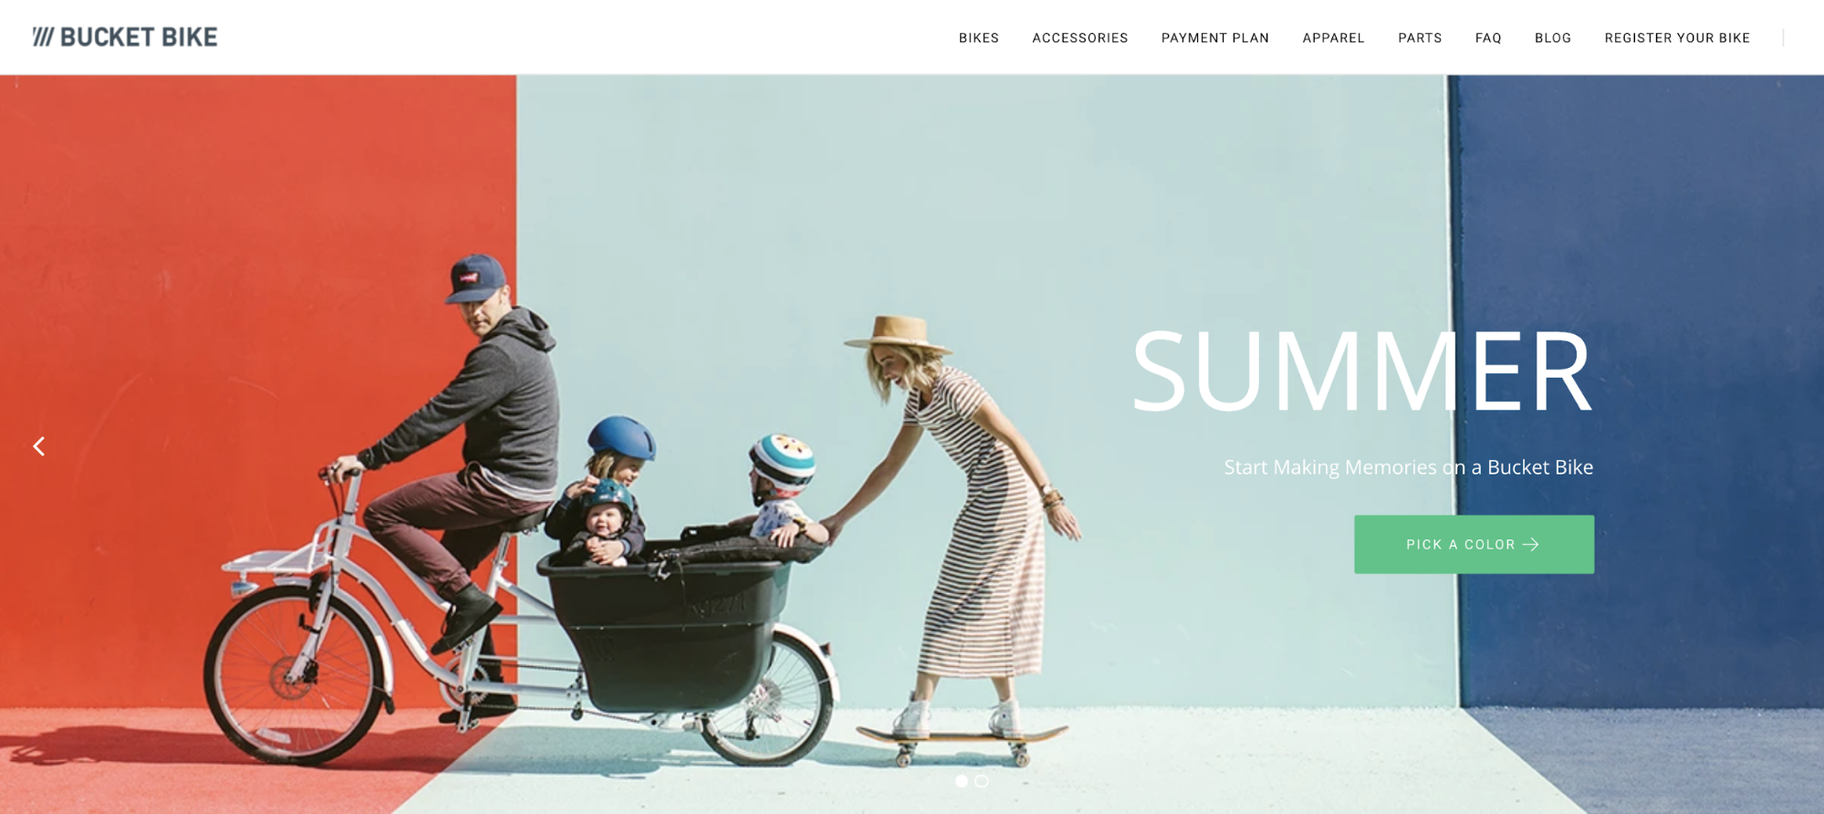 Small Business Website Example: Bucket Bike